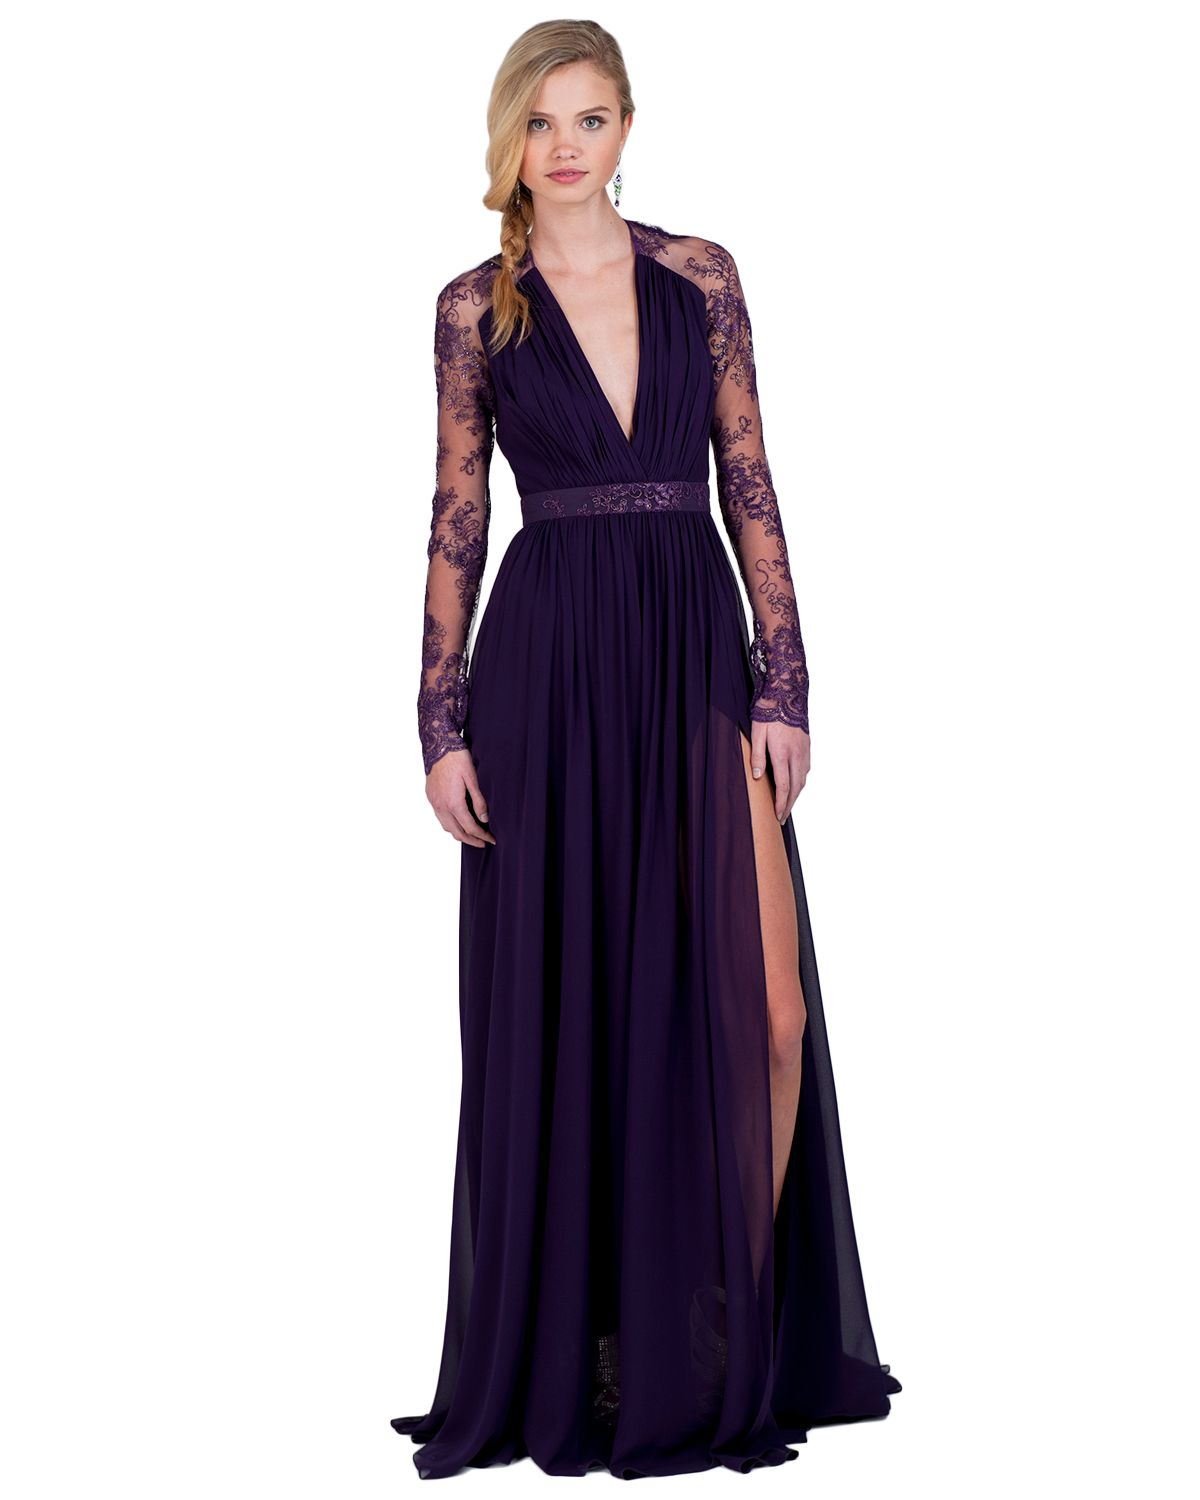 EG1340 Long-Sleeve Lace Evening Gown by Badgley Mischka | style ...